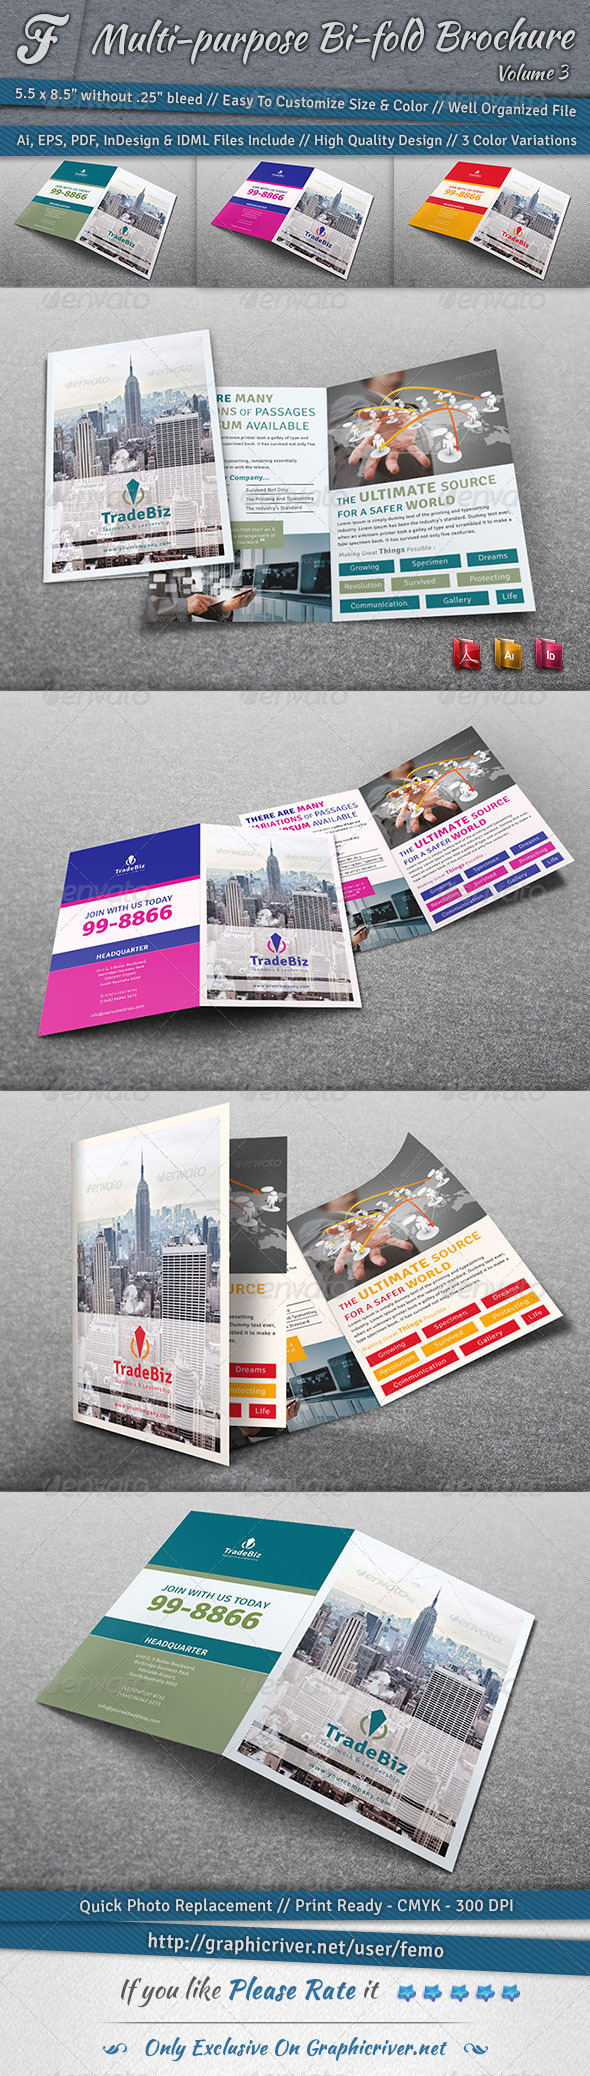 Multi-purpose Bi-fold Brochure | Volume 3 - Corporate Brochures